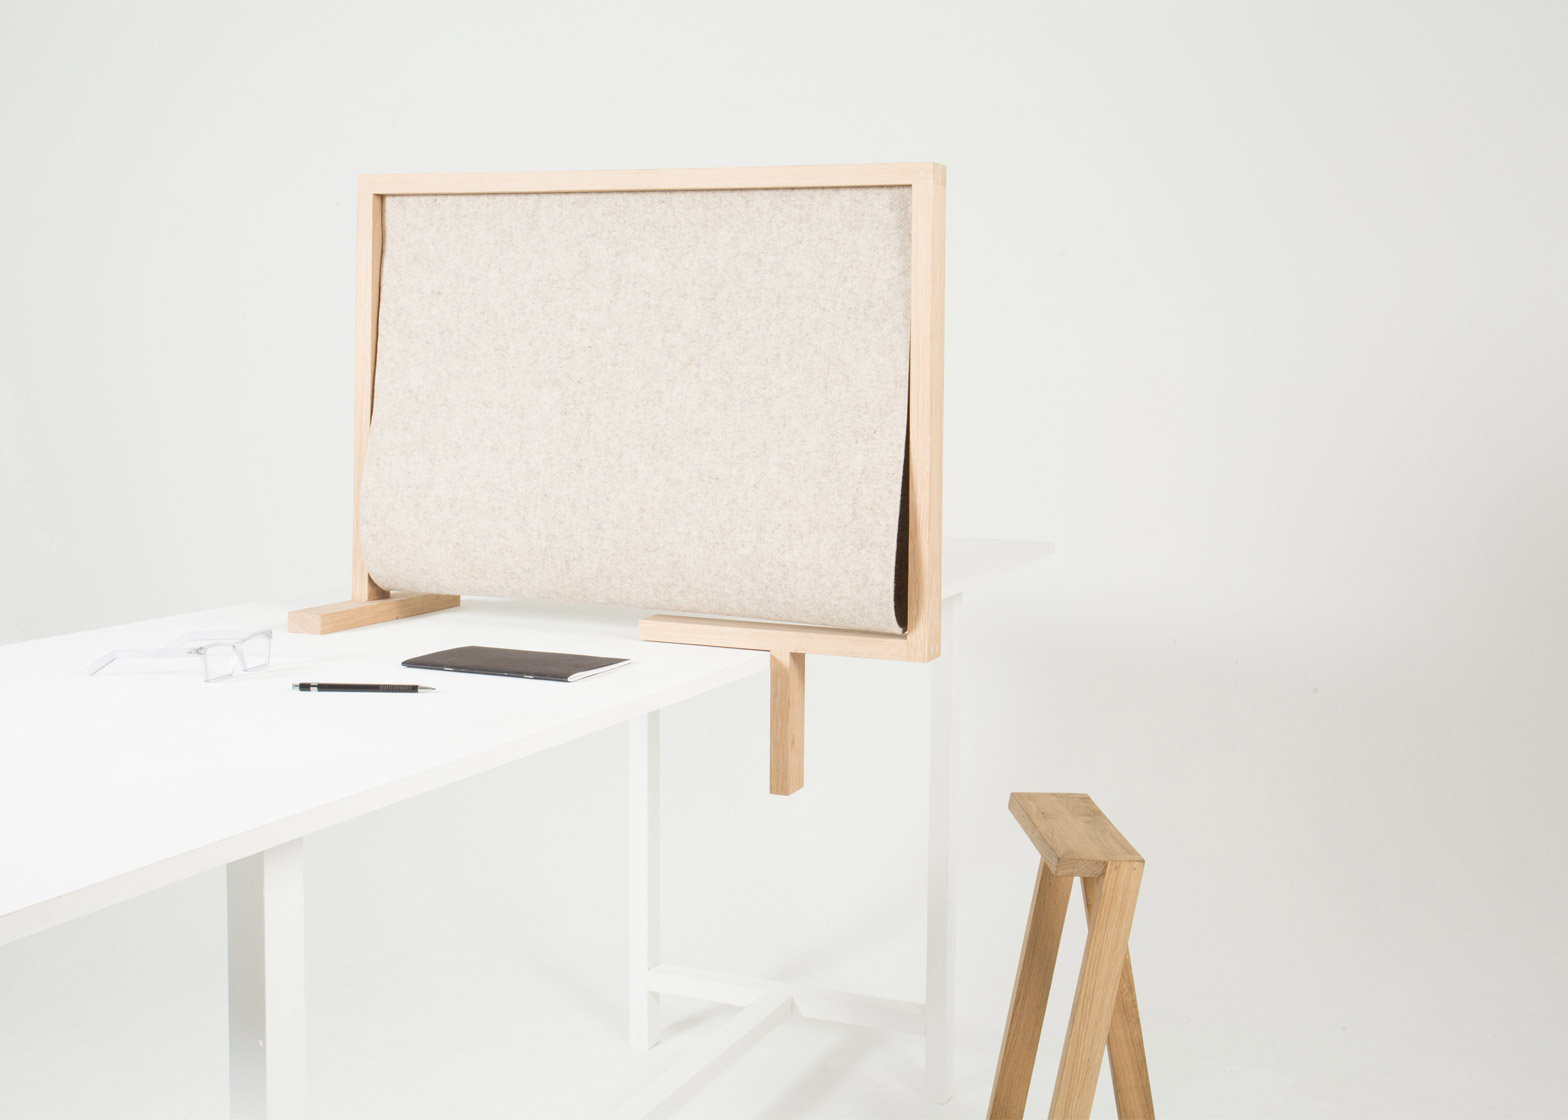 Pierre-Emmanuel Vandeputte designs desk divider for isolation